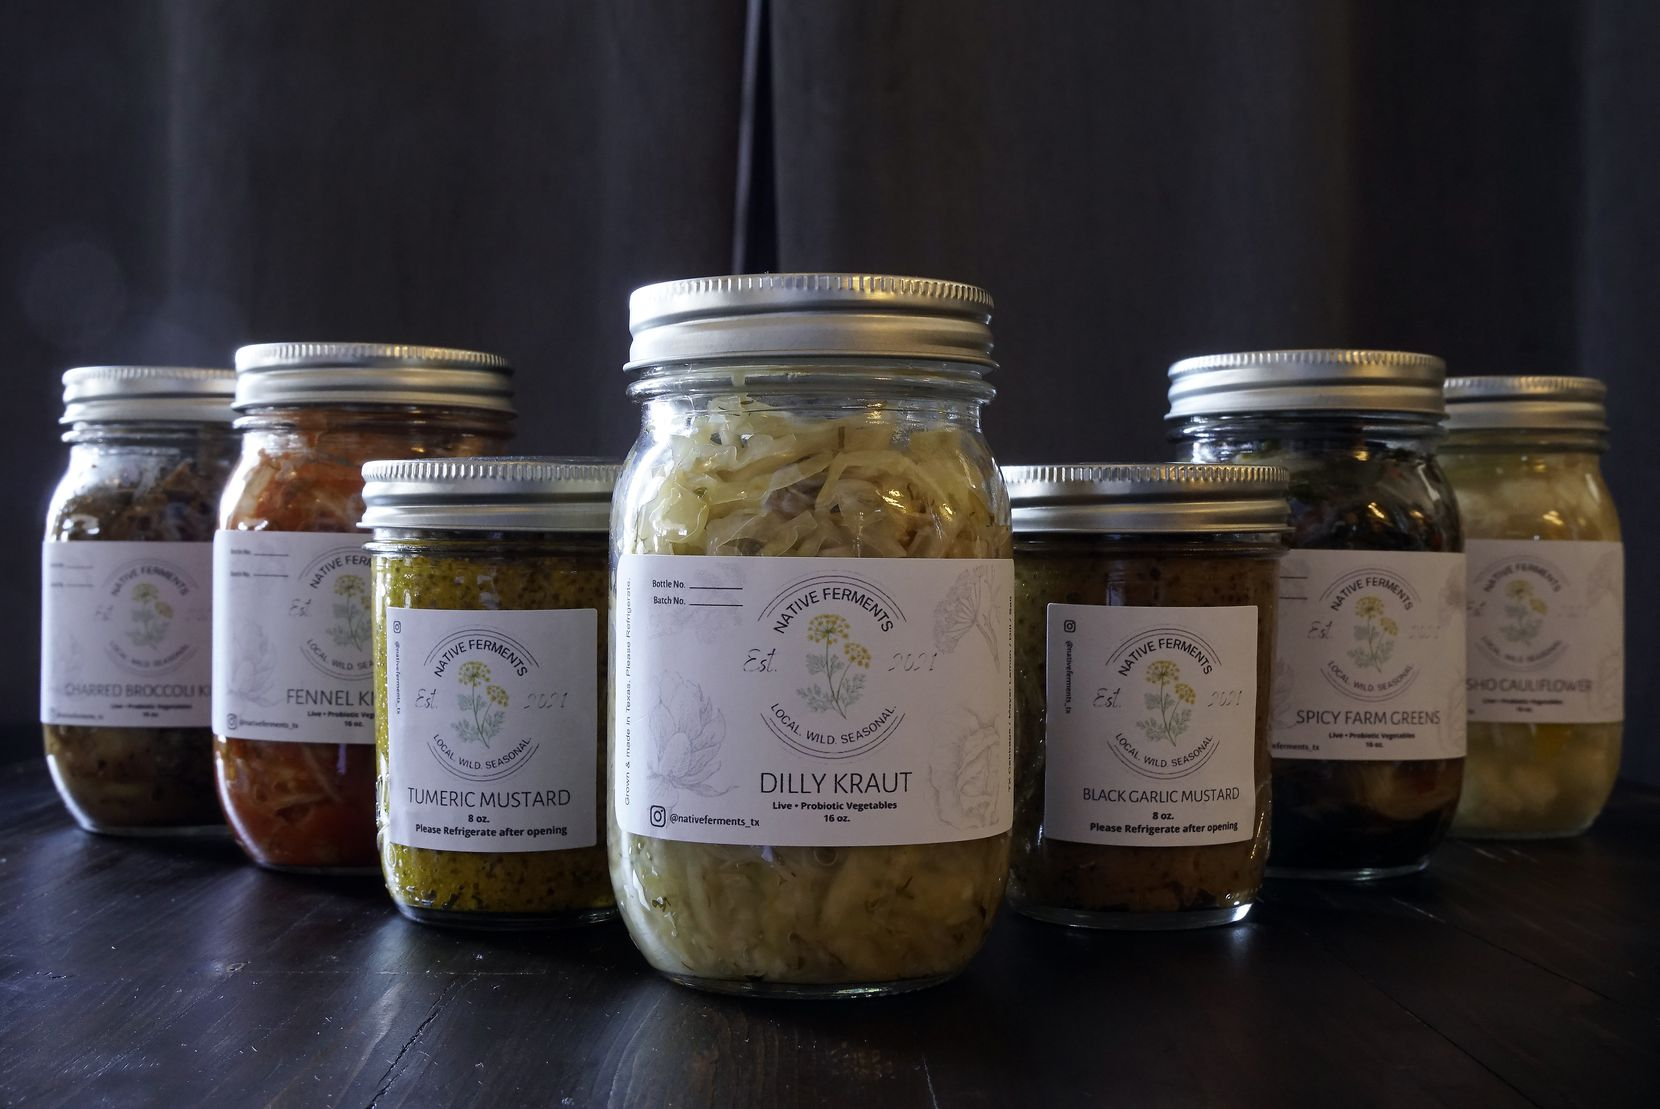 Jessica Alonzo's Native Ferments at Petra and the Beast in Dallas